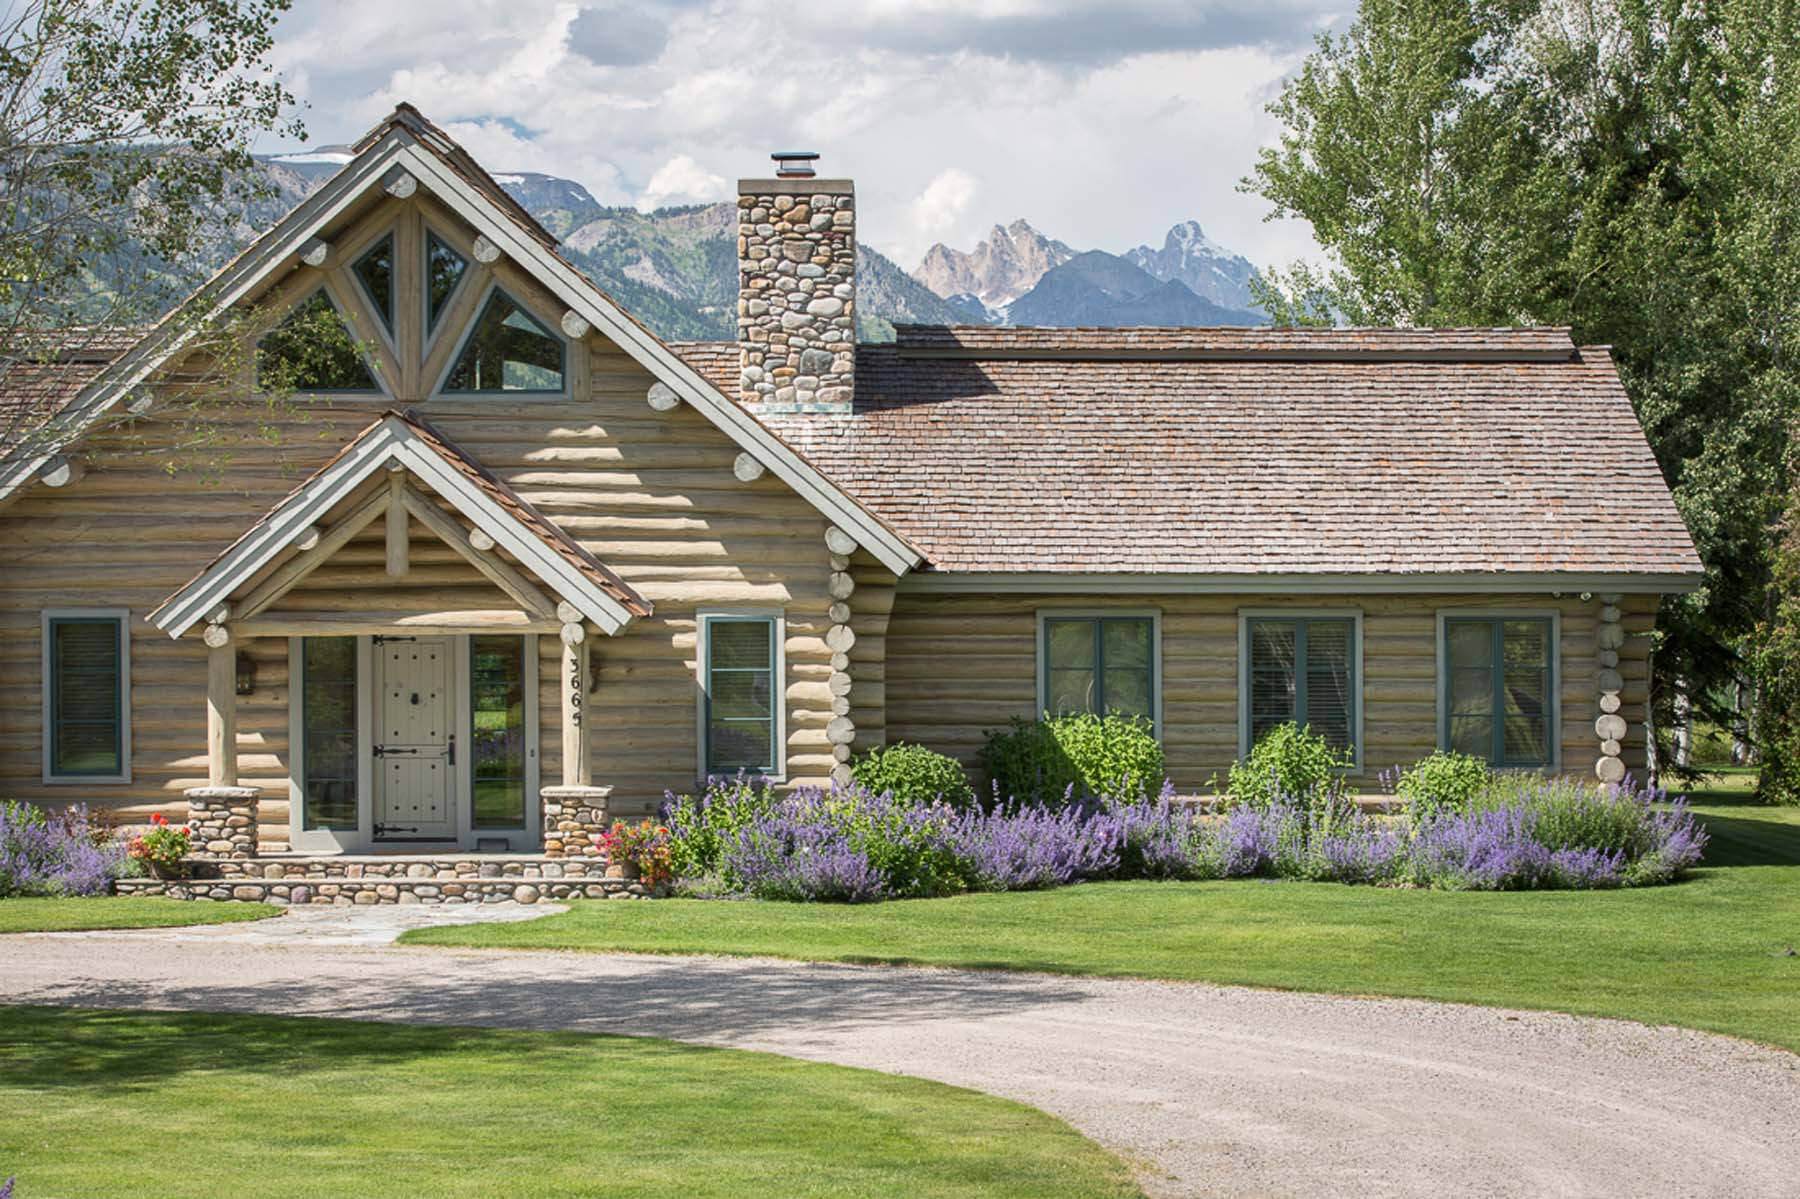 Single Family Home for Sale at Tranquility Under the Tetons in Tucker Ranch 3665 Tucker Ranch Rd. Wilson, Wyoming, 83014 United States